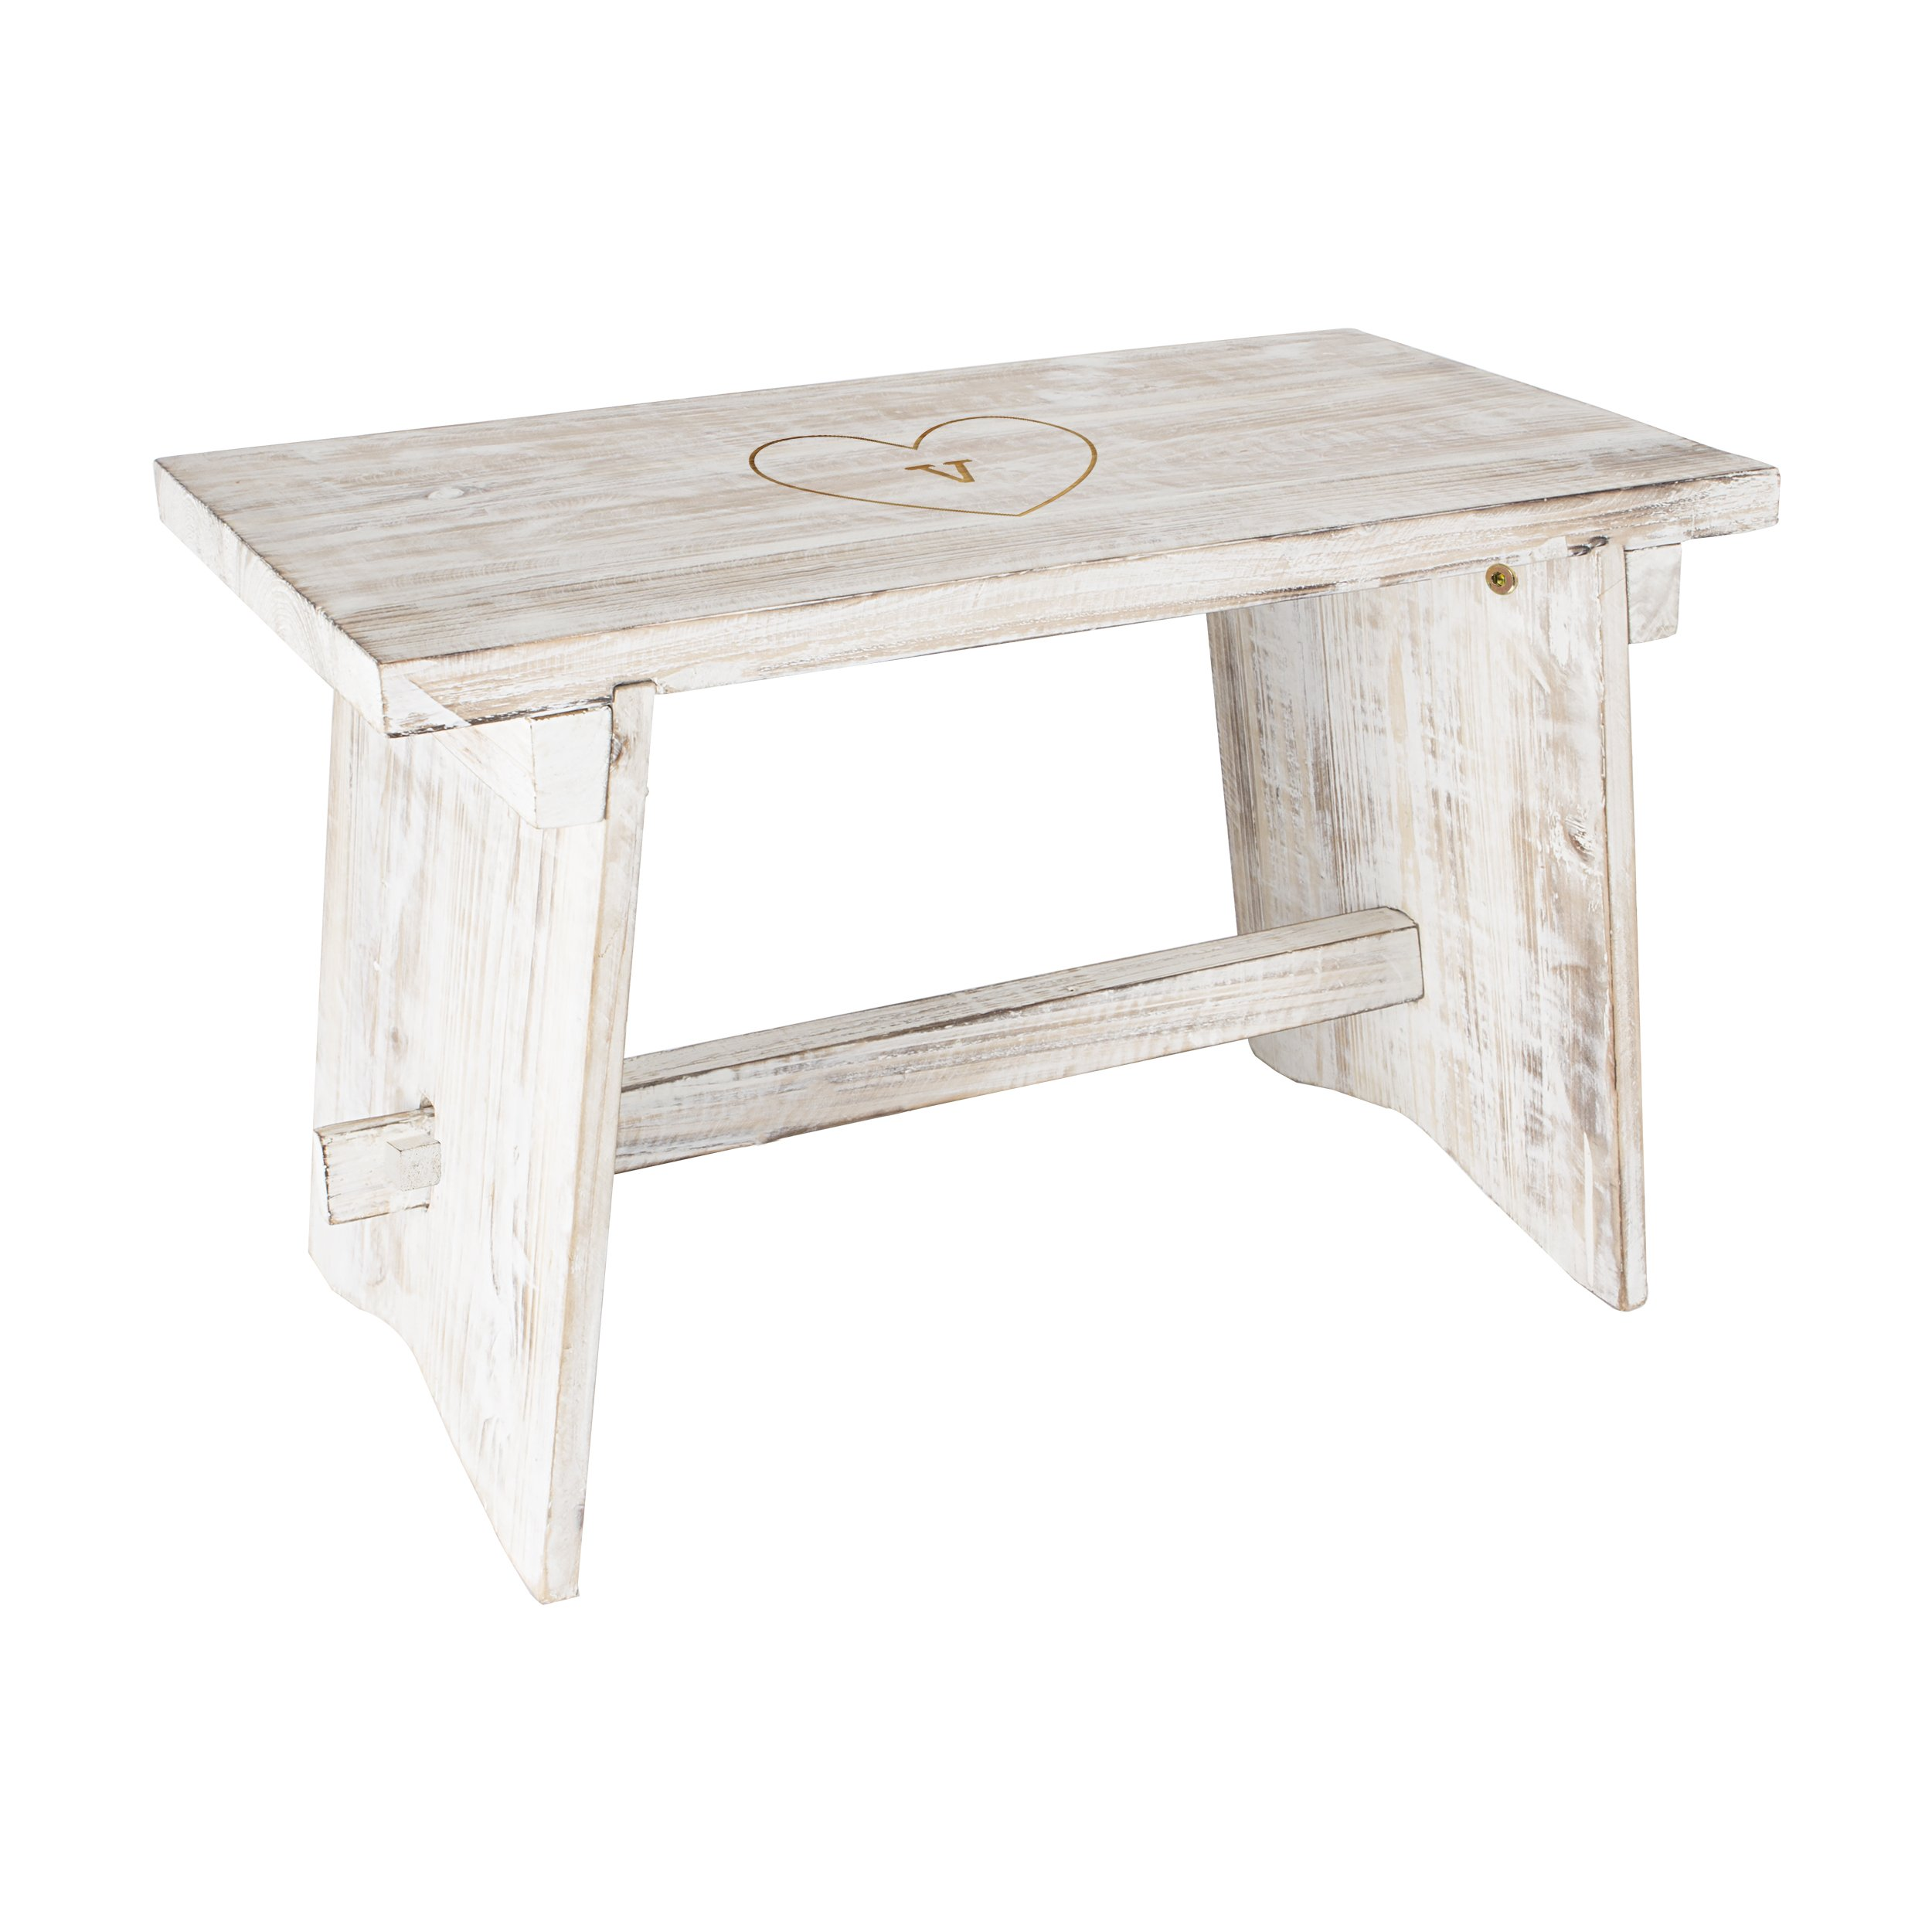 Cathy's Concepts HRT-3950-V Personalized Heart Rustic Wooden Guestbook Bench by Cathy's Concepts